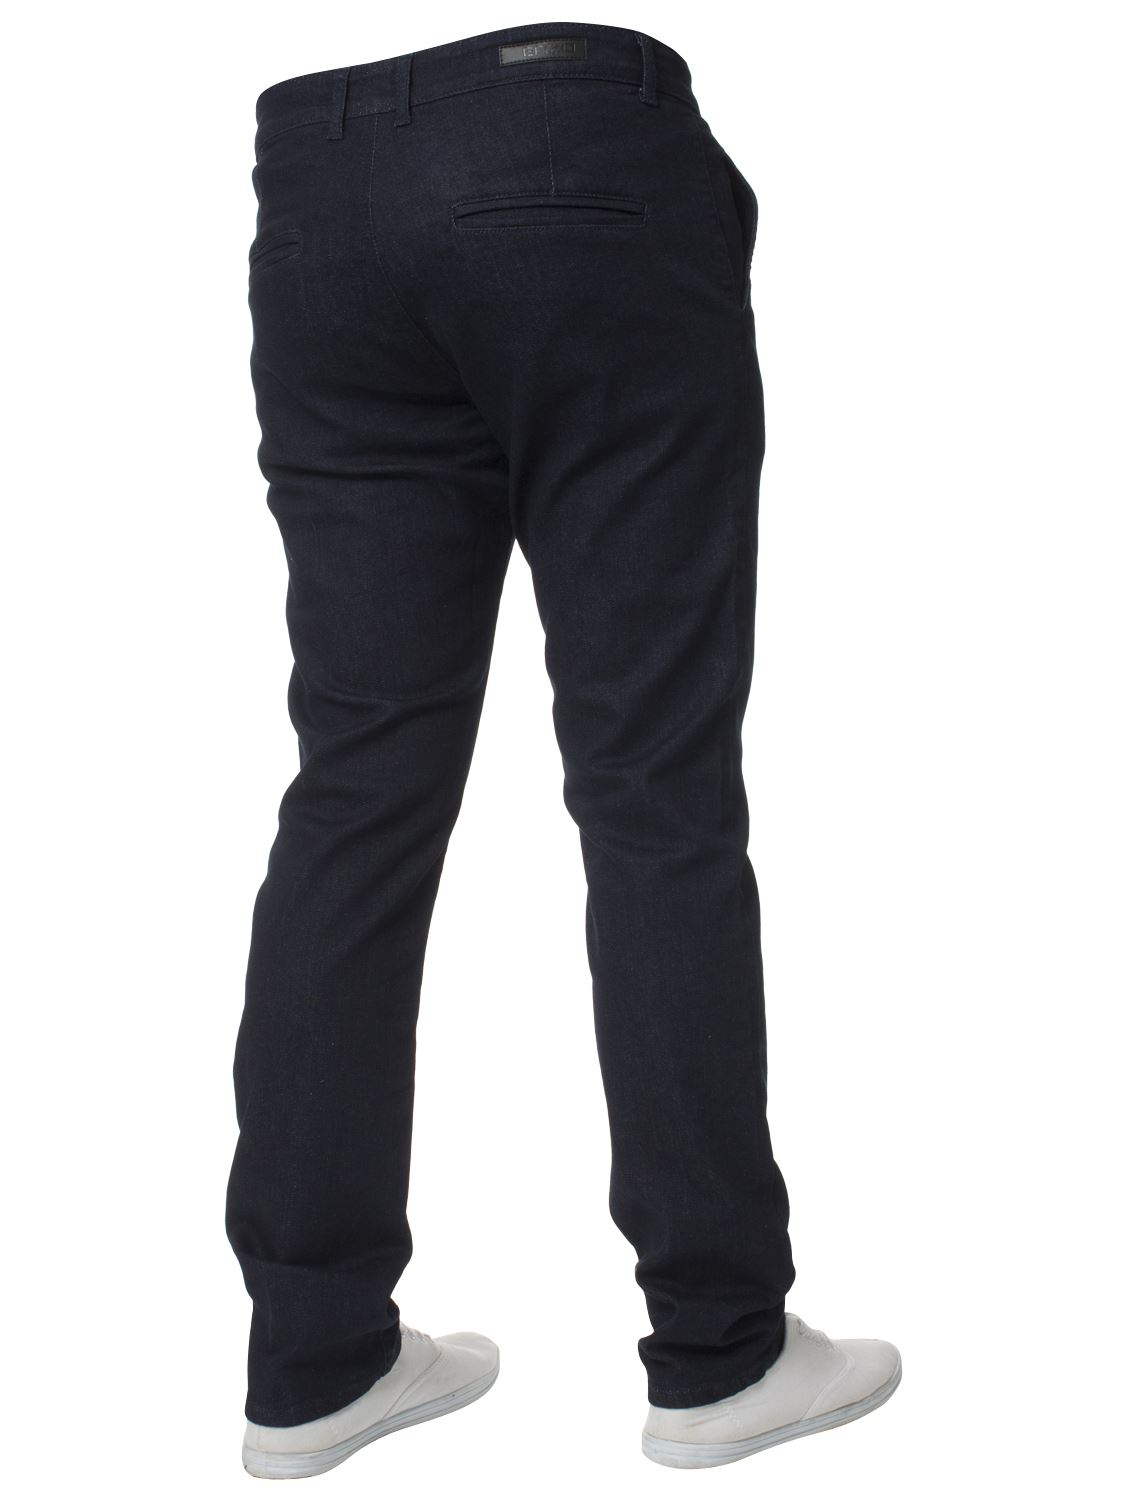 New-Mens-Enzo-Jeans-Denim-Chinos-Skinny-Slim-Fit-Super-Stretch-Trousers-Pants thumbnail 9